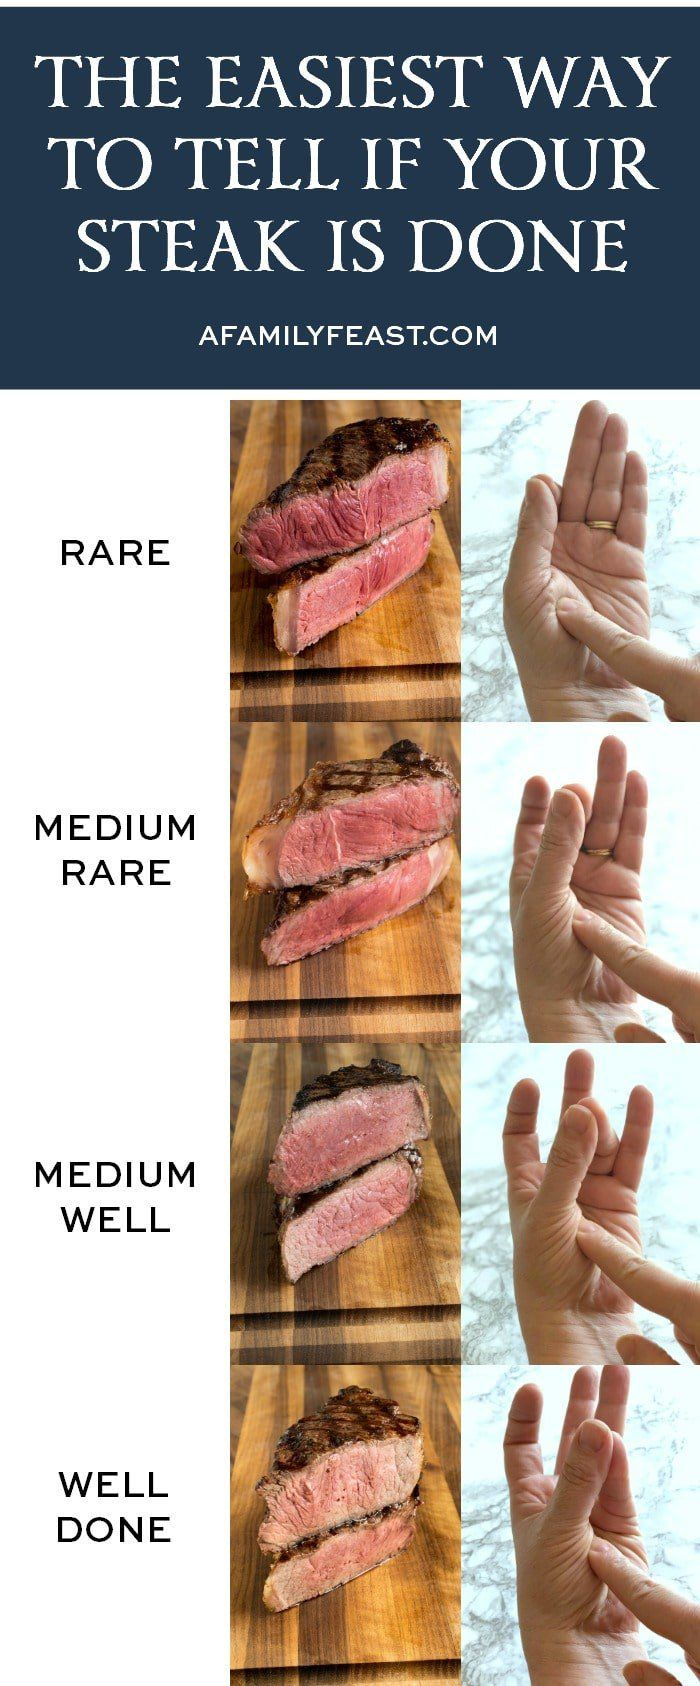 Easiest Way to Tell When your Steak is Done is part of How to cook steak, Cooking, Cooking meat, Food recipes, Food, Cooking and baking - Learn the easiest way to tell when your steak is cooked to the perfect level of doneness